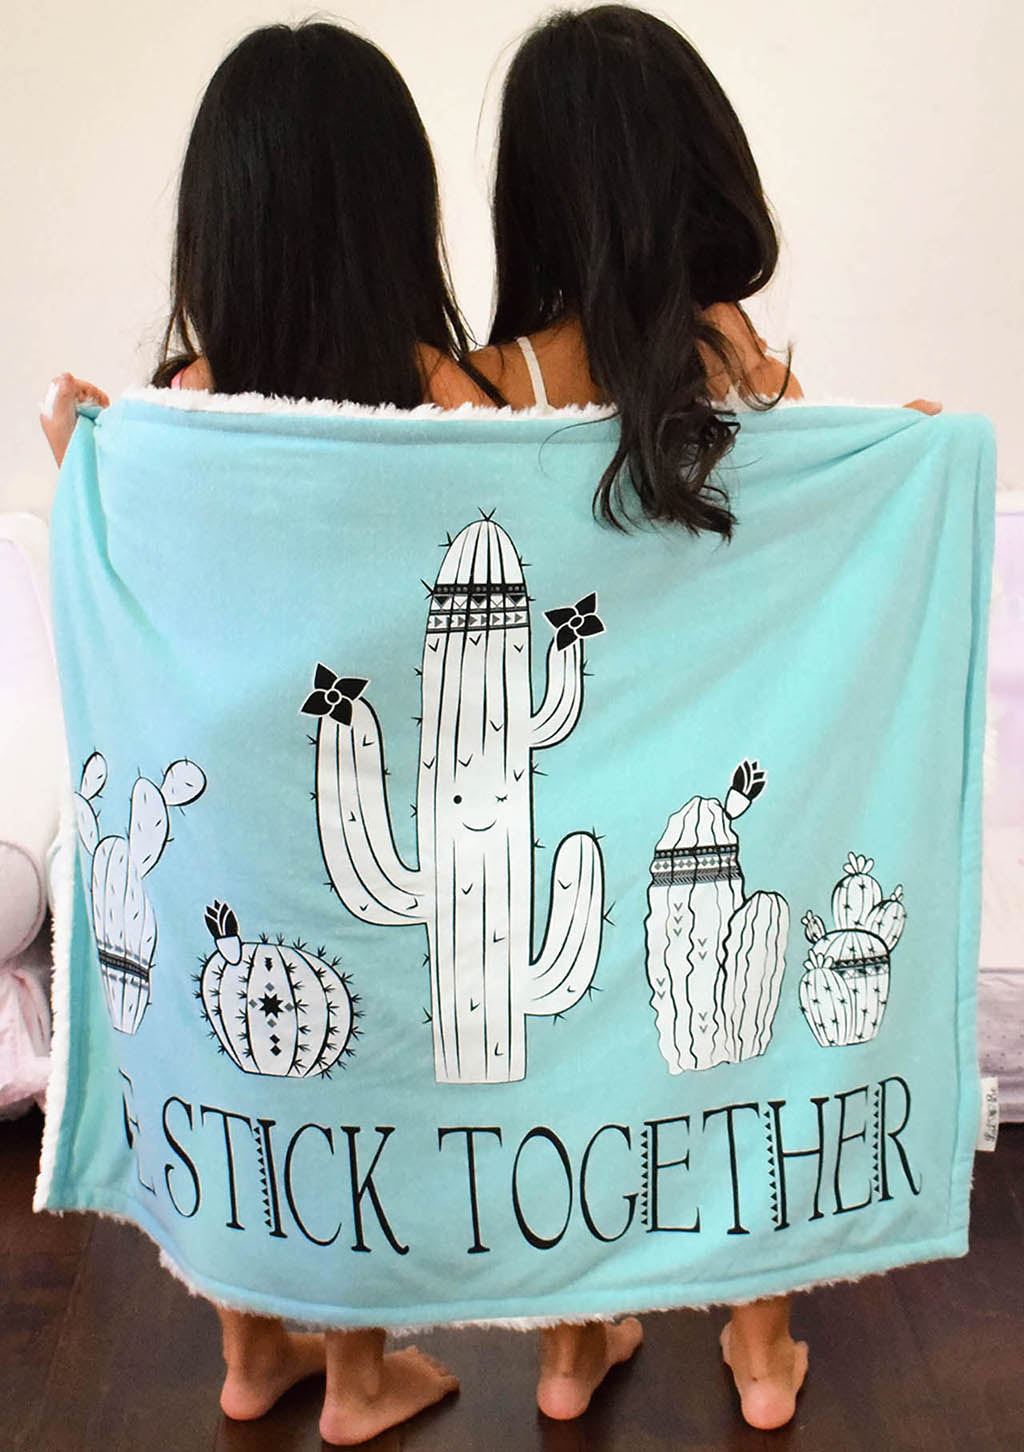 Twin Girls Holding Cactus We Stick Together Baby Blanket